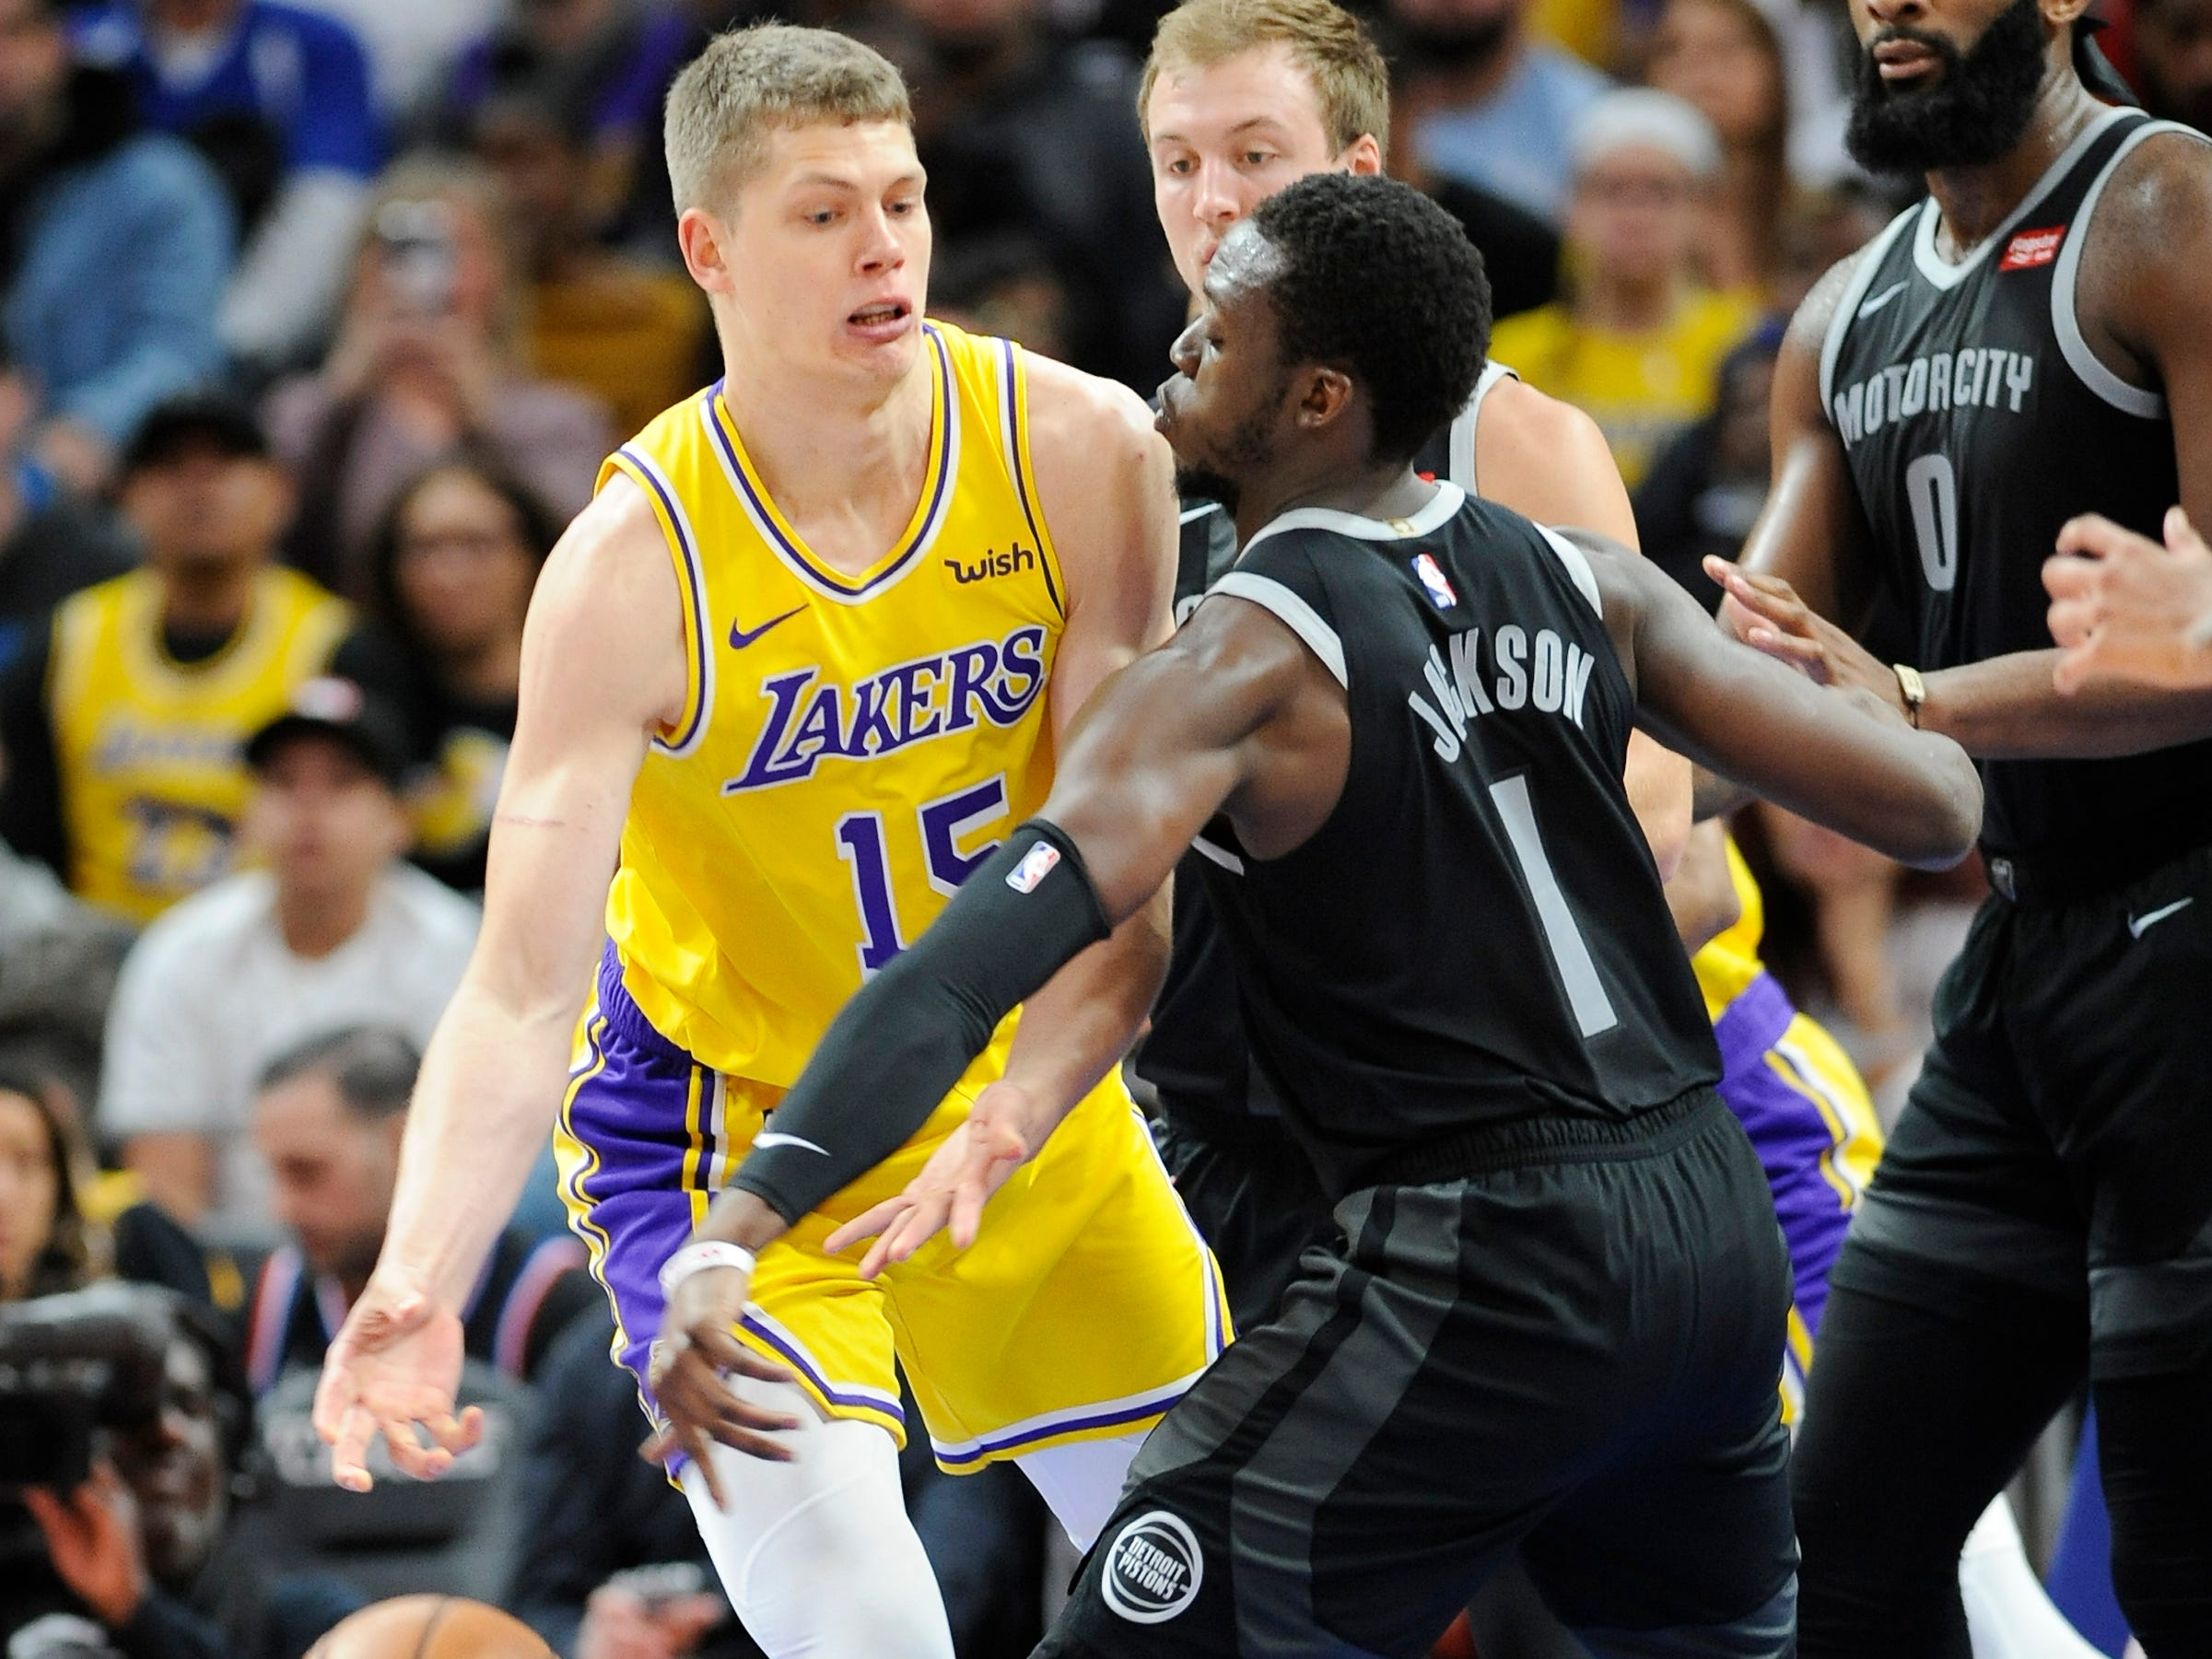 Pistons' Reggie Jackson steals the ball from Lakers' Moritz Wagner in the second quarter.